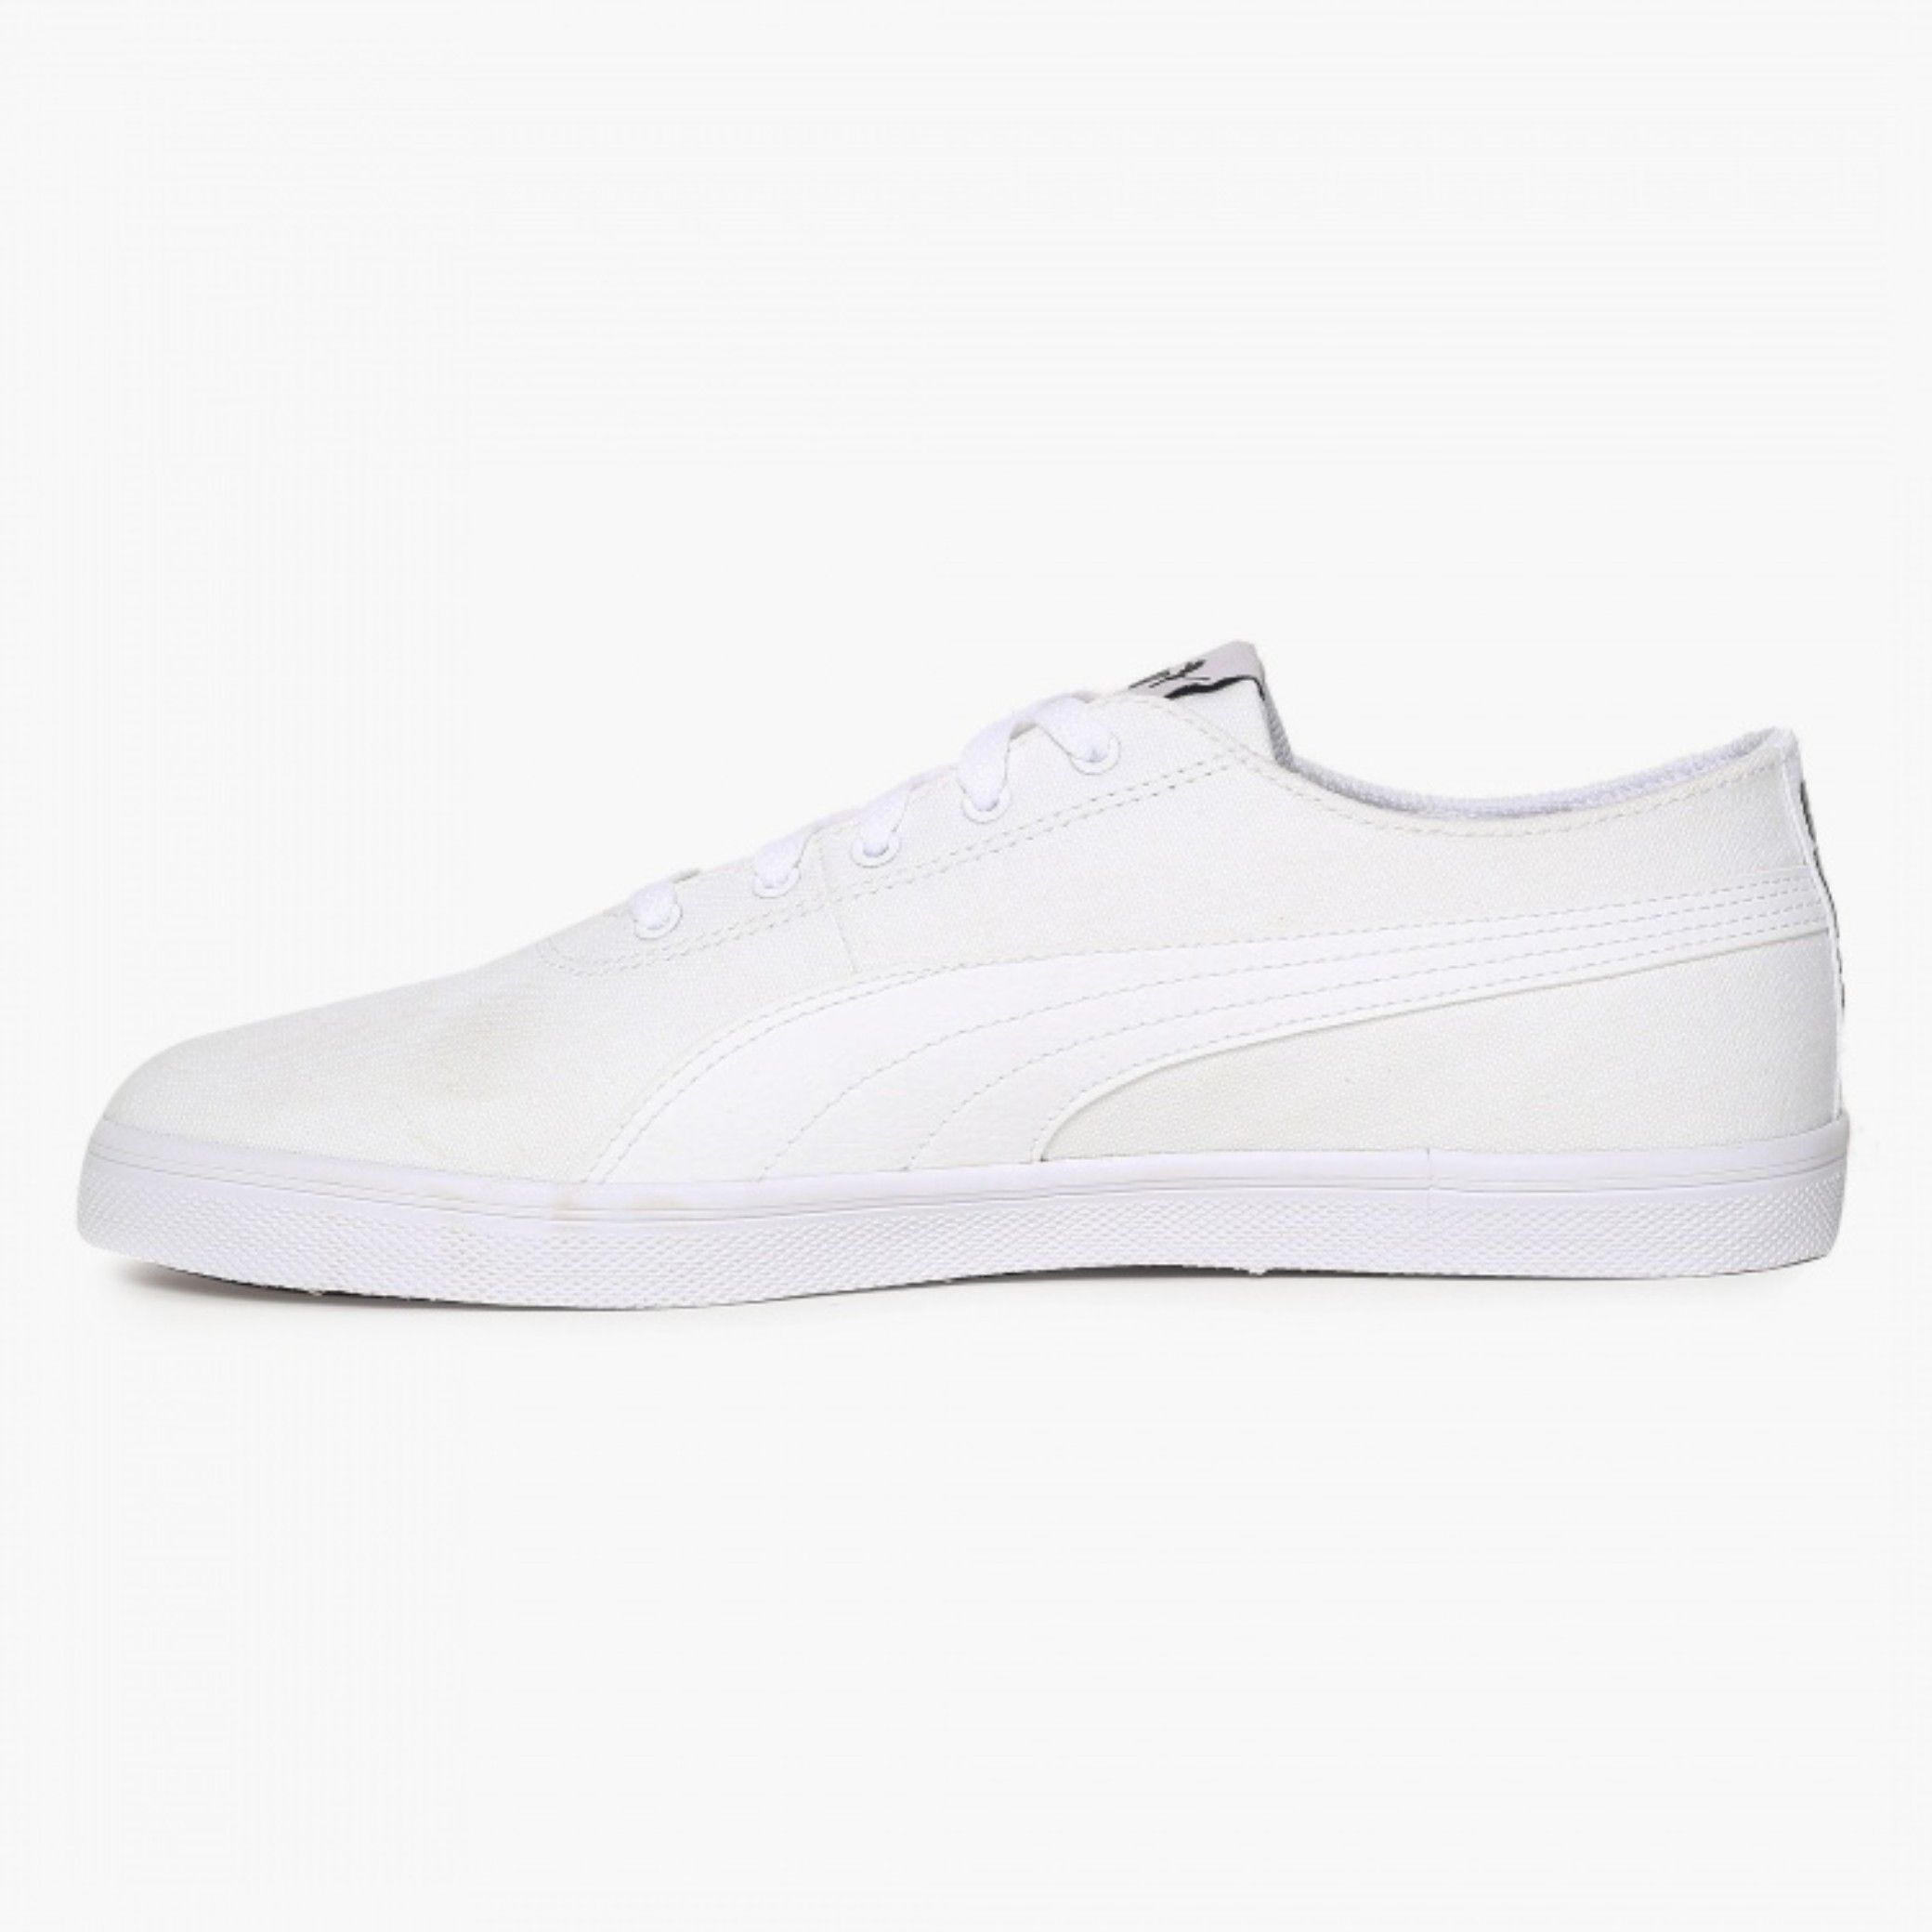 puma white casual shoes online